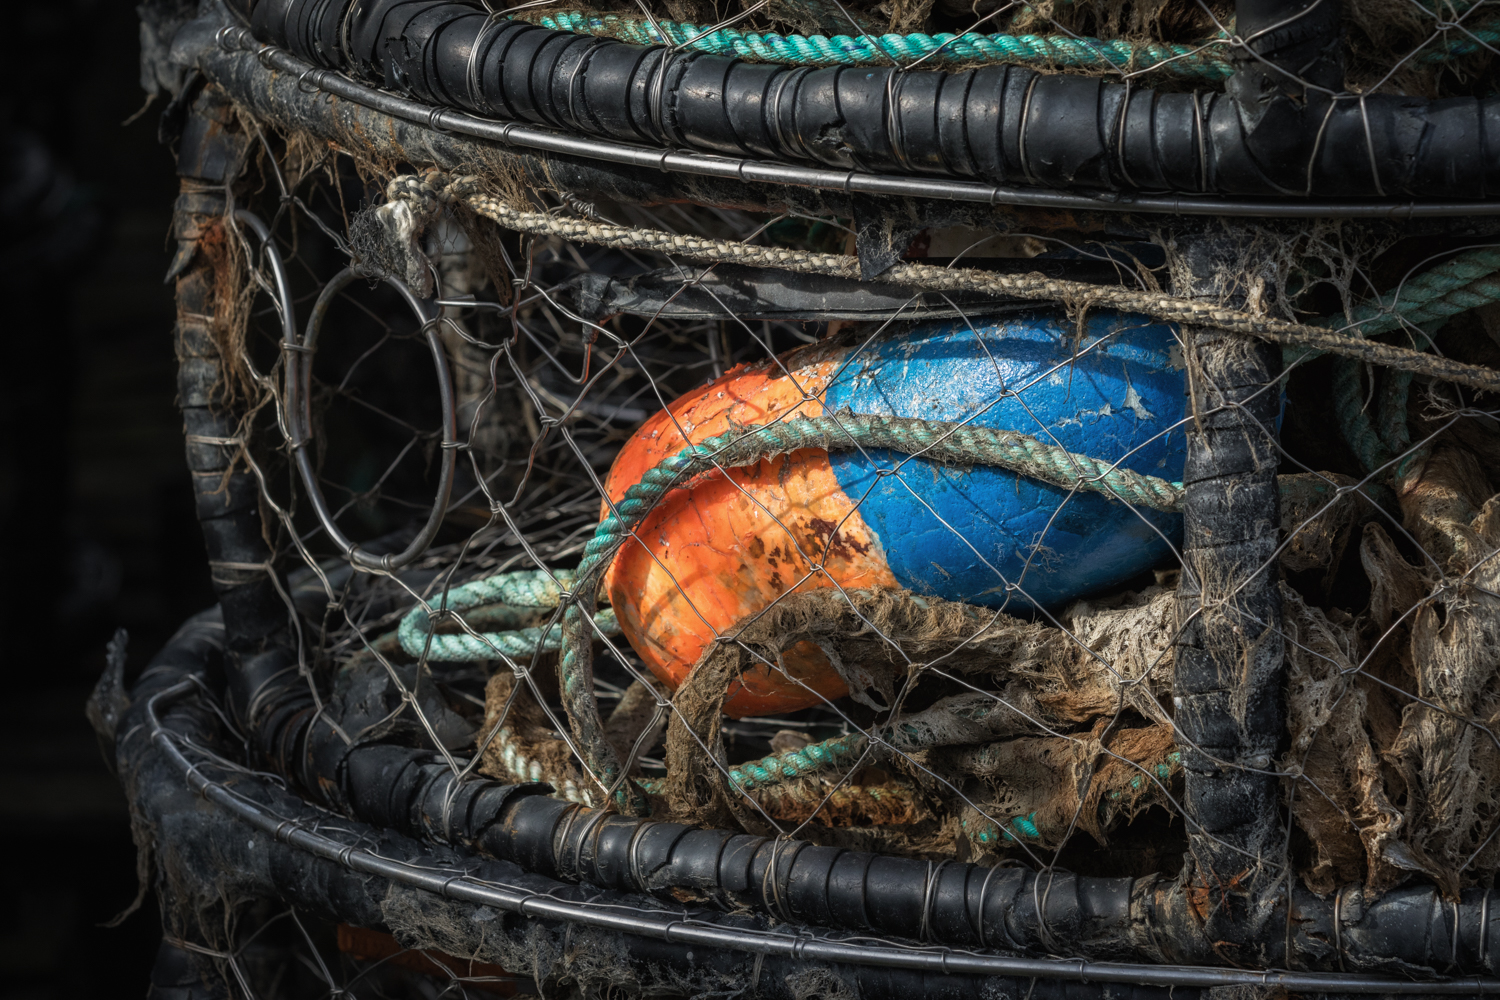 Blue and Orange Buoy  The Orange. The Blue. The texture of the rope in the crab pot. Do inanimate objects wait? Does it long to go back to work? Does it miss the kiss of the cold Oregon Pacific?